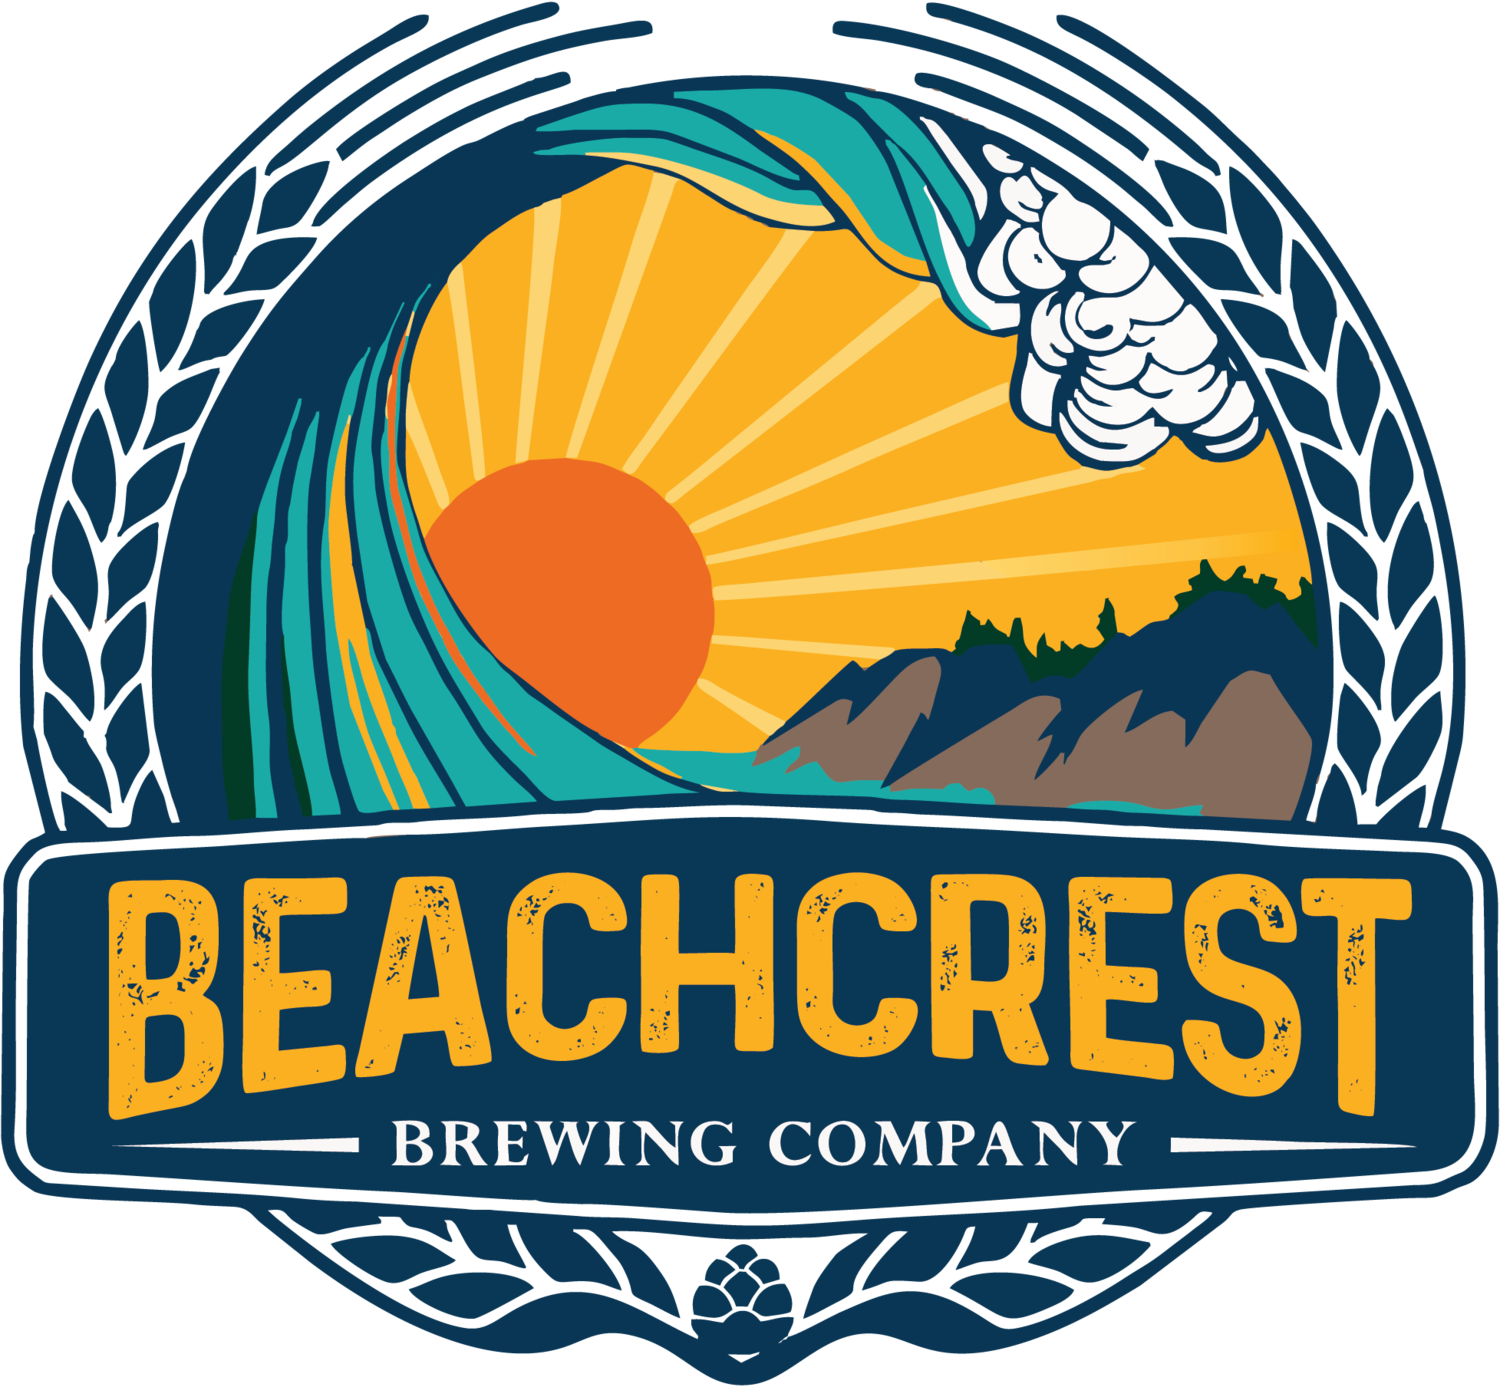 Beachcrest Brewing Company